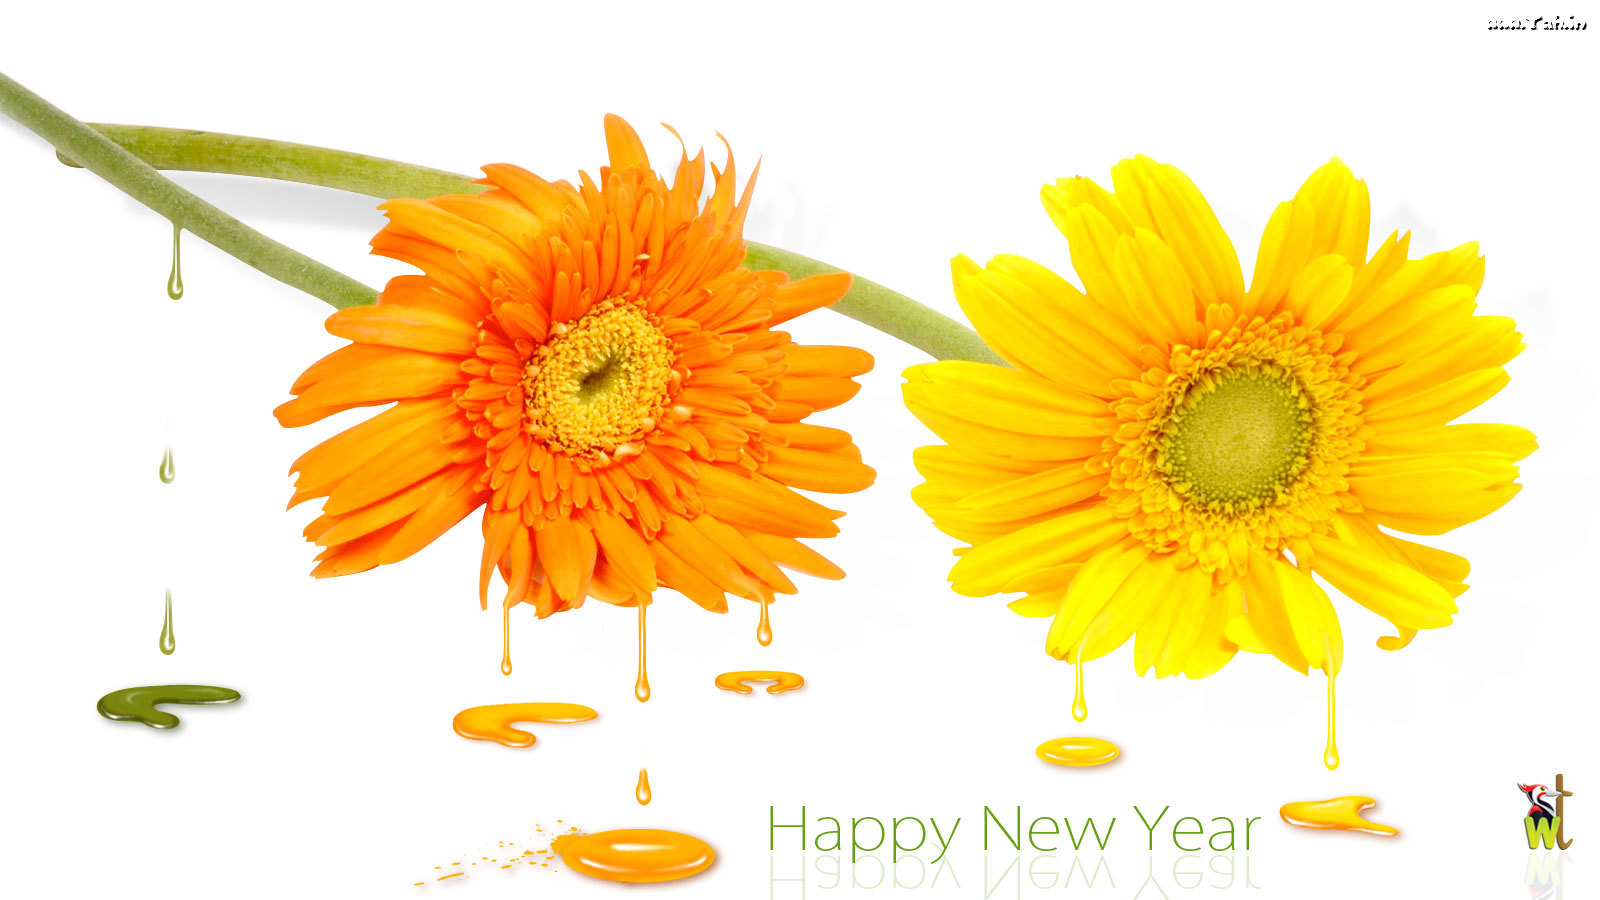 New Year Flowers Gifts: 2013 New Year Flowers Wishes ...